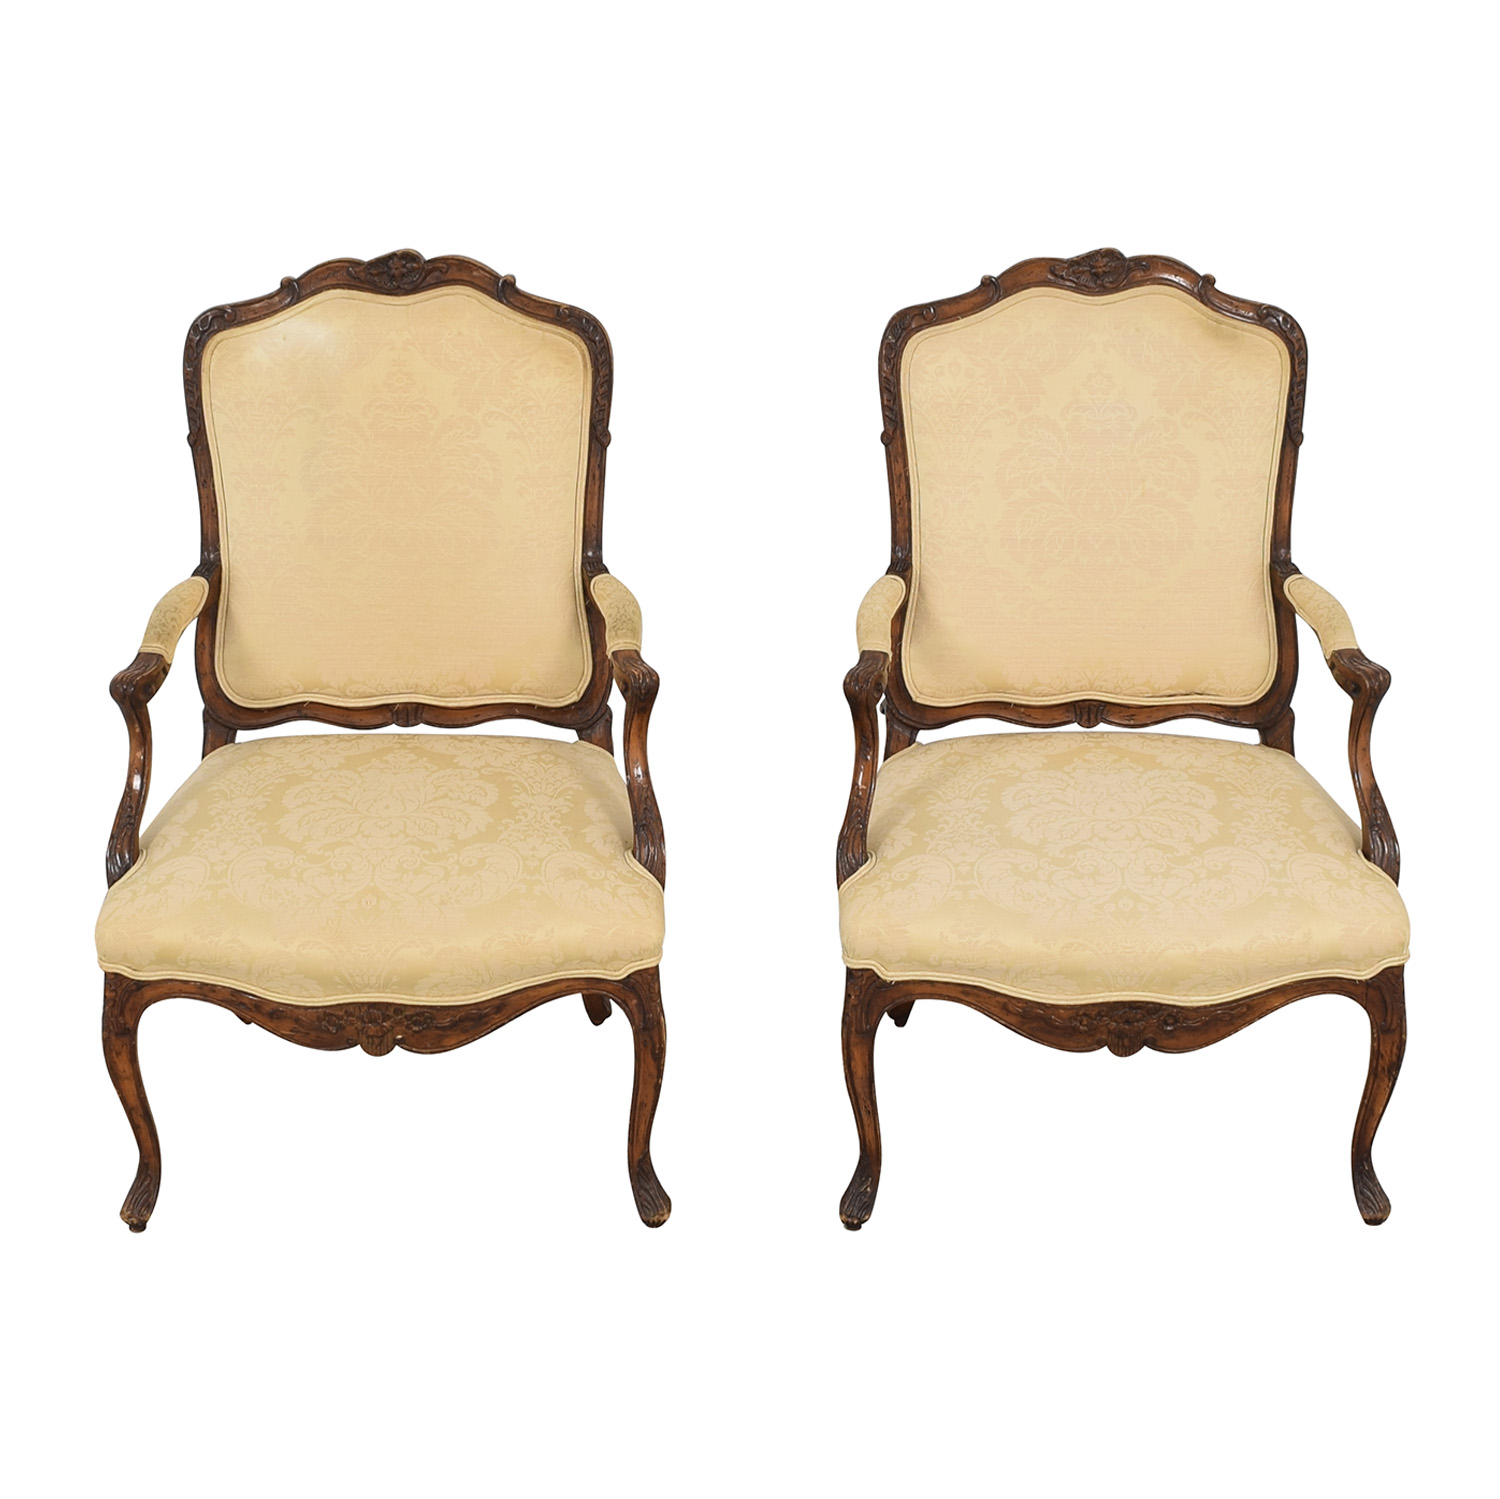 Rococo Style Dining Chairs used